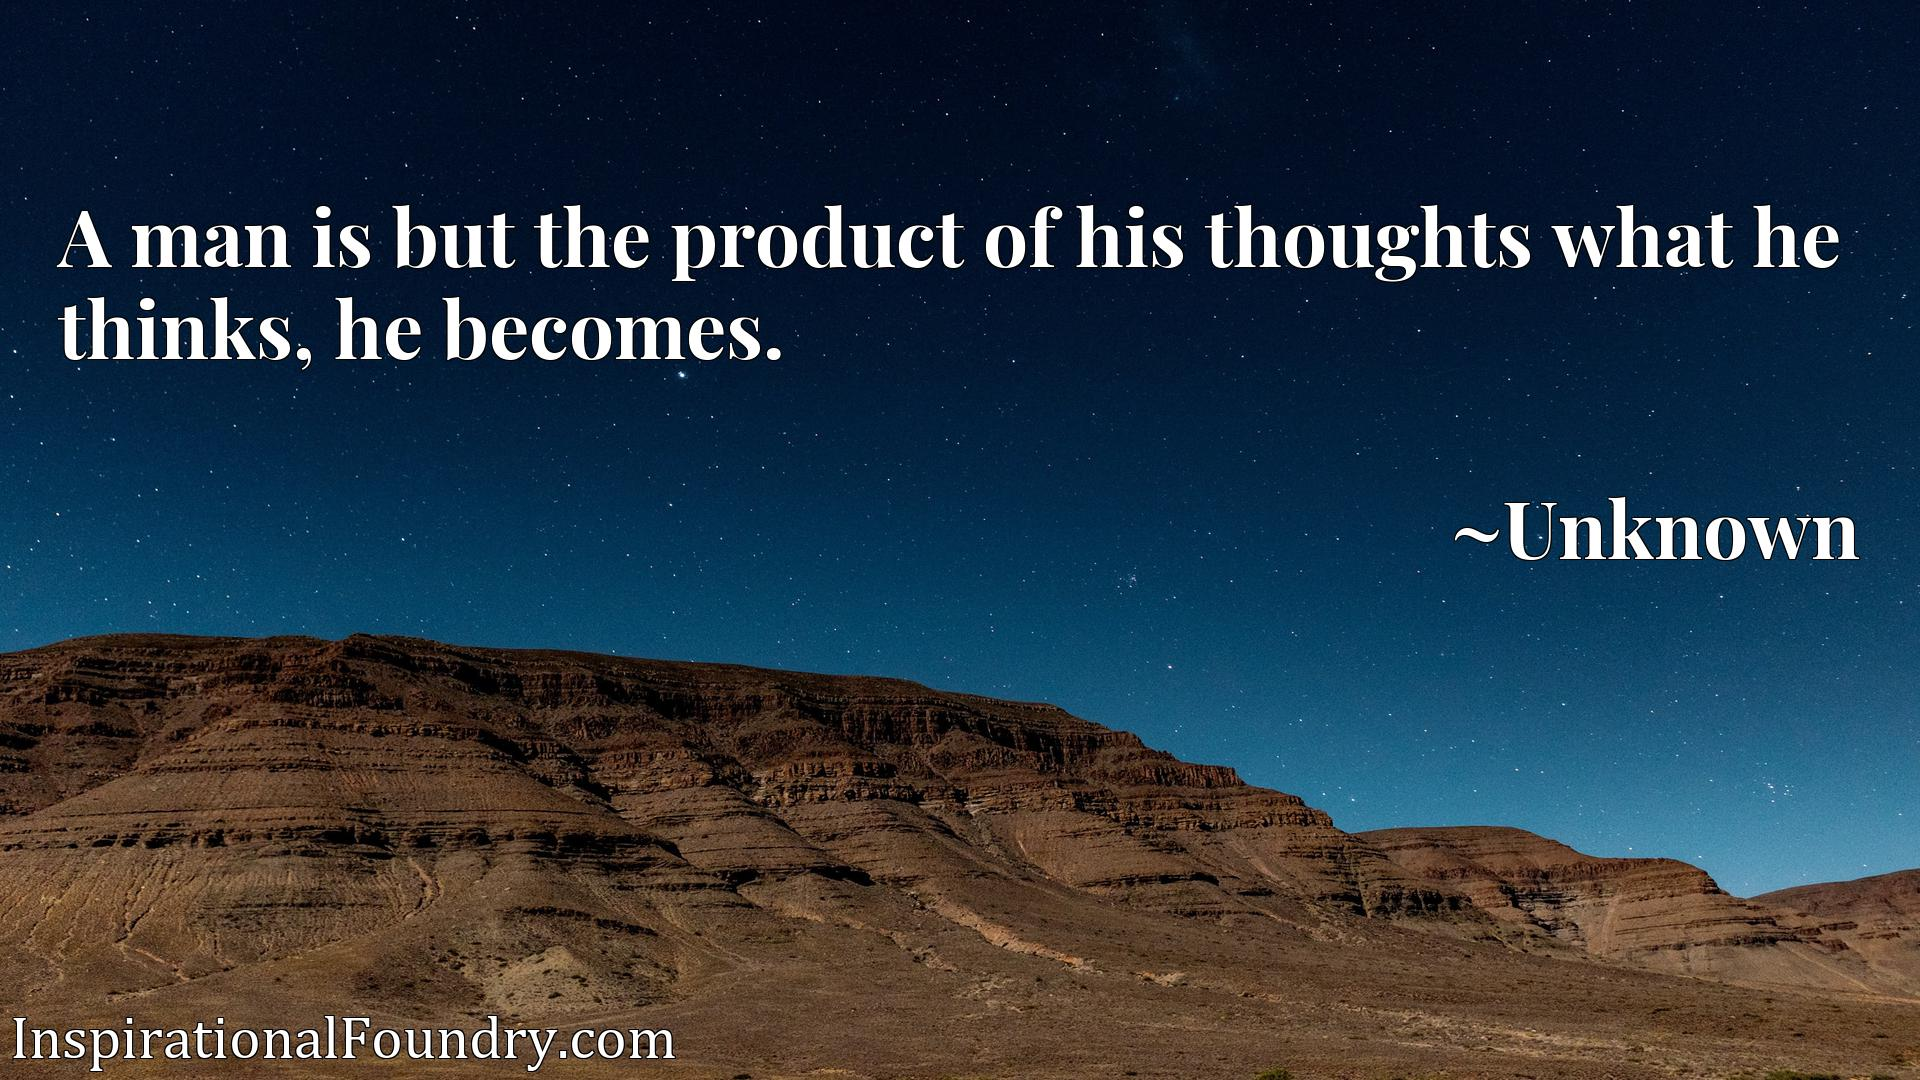 A man is but the product of his thoughts what he thinks, he becomes.